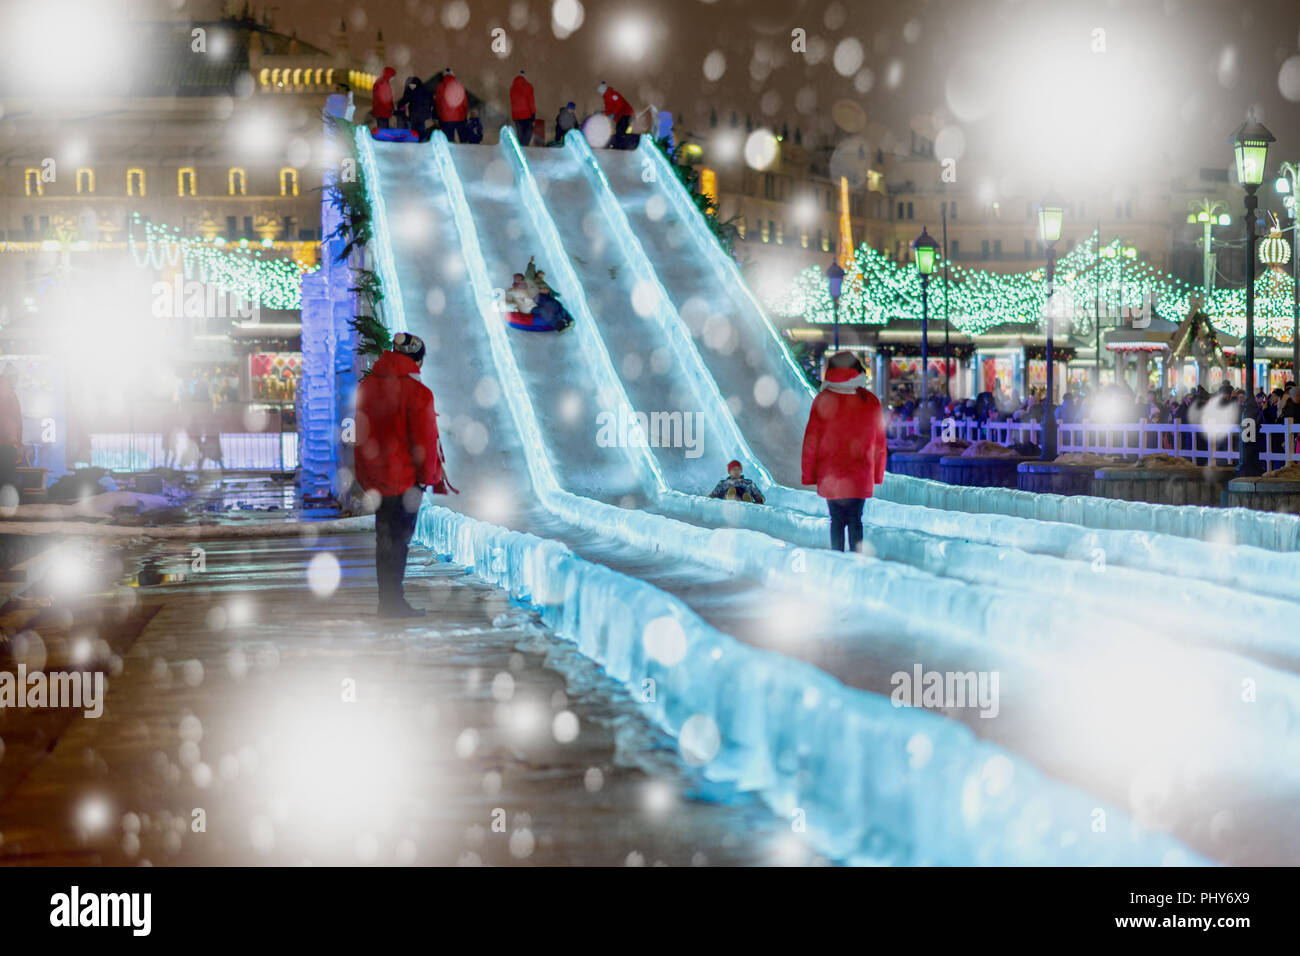 Abstract blurred background of Christmas street frozen hill , ice slide, fun leisure, skating, snowflakes - Stock Image